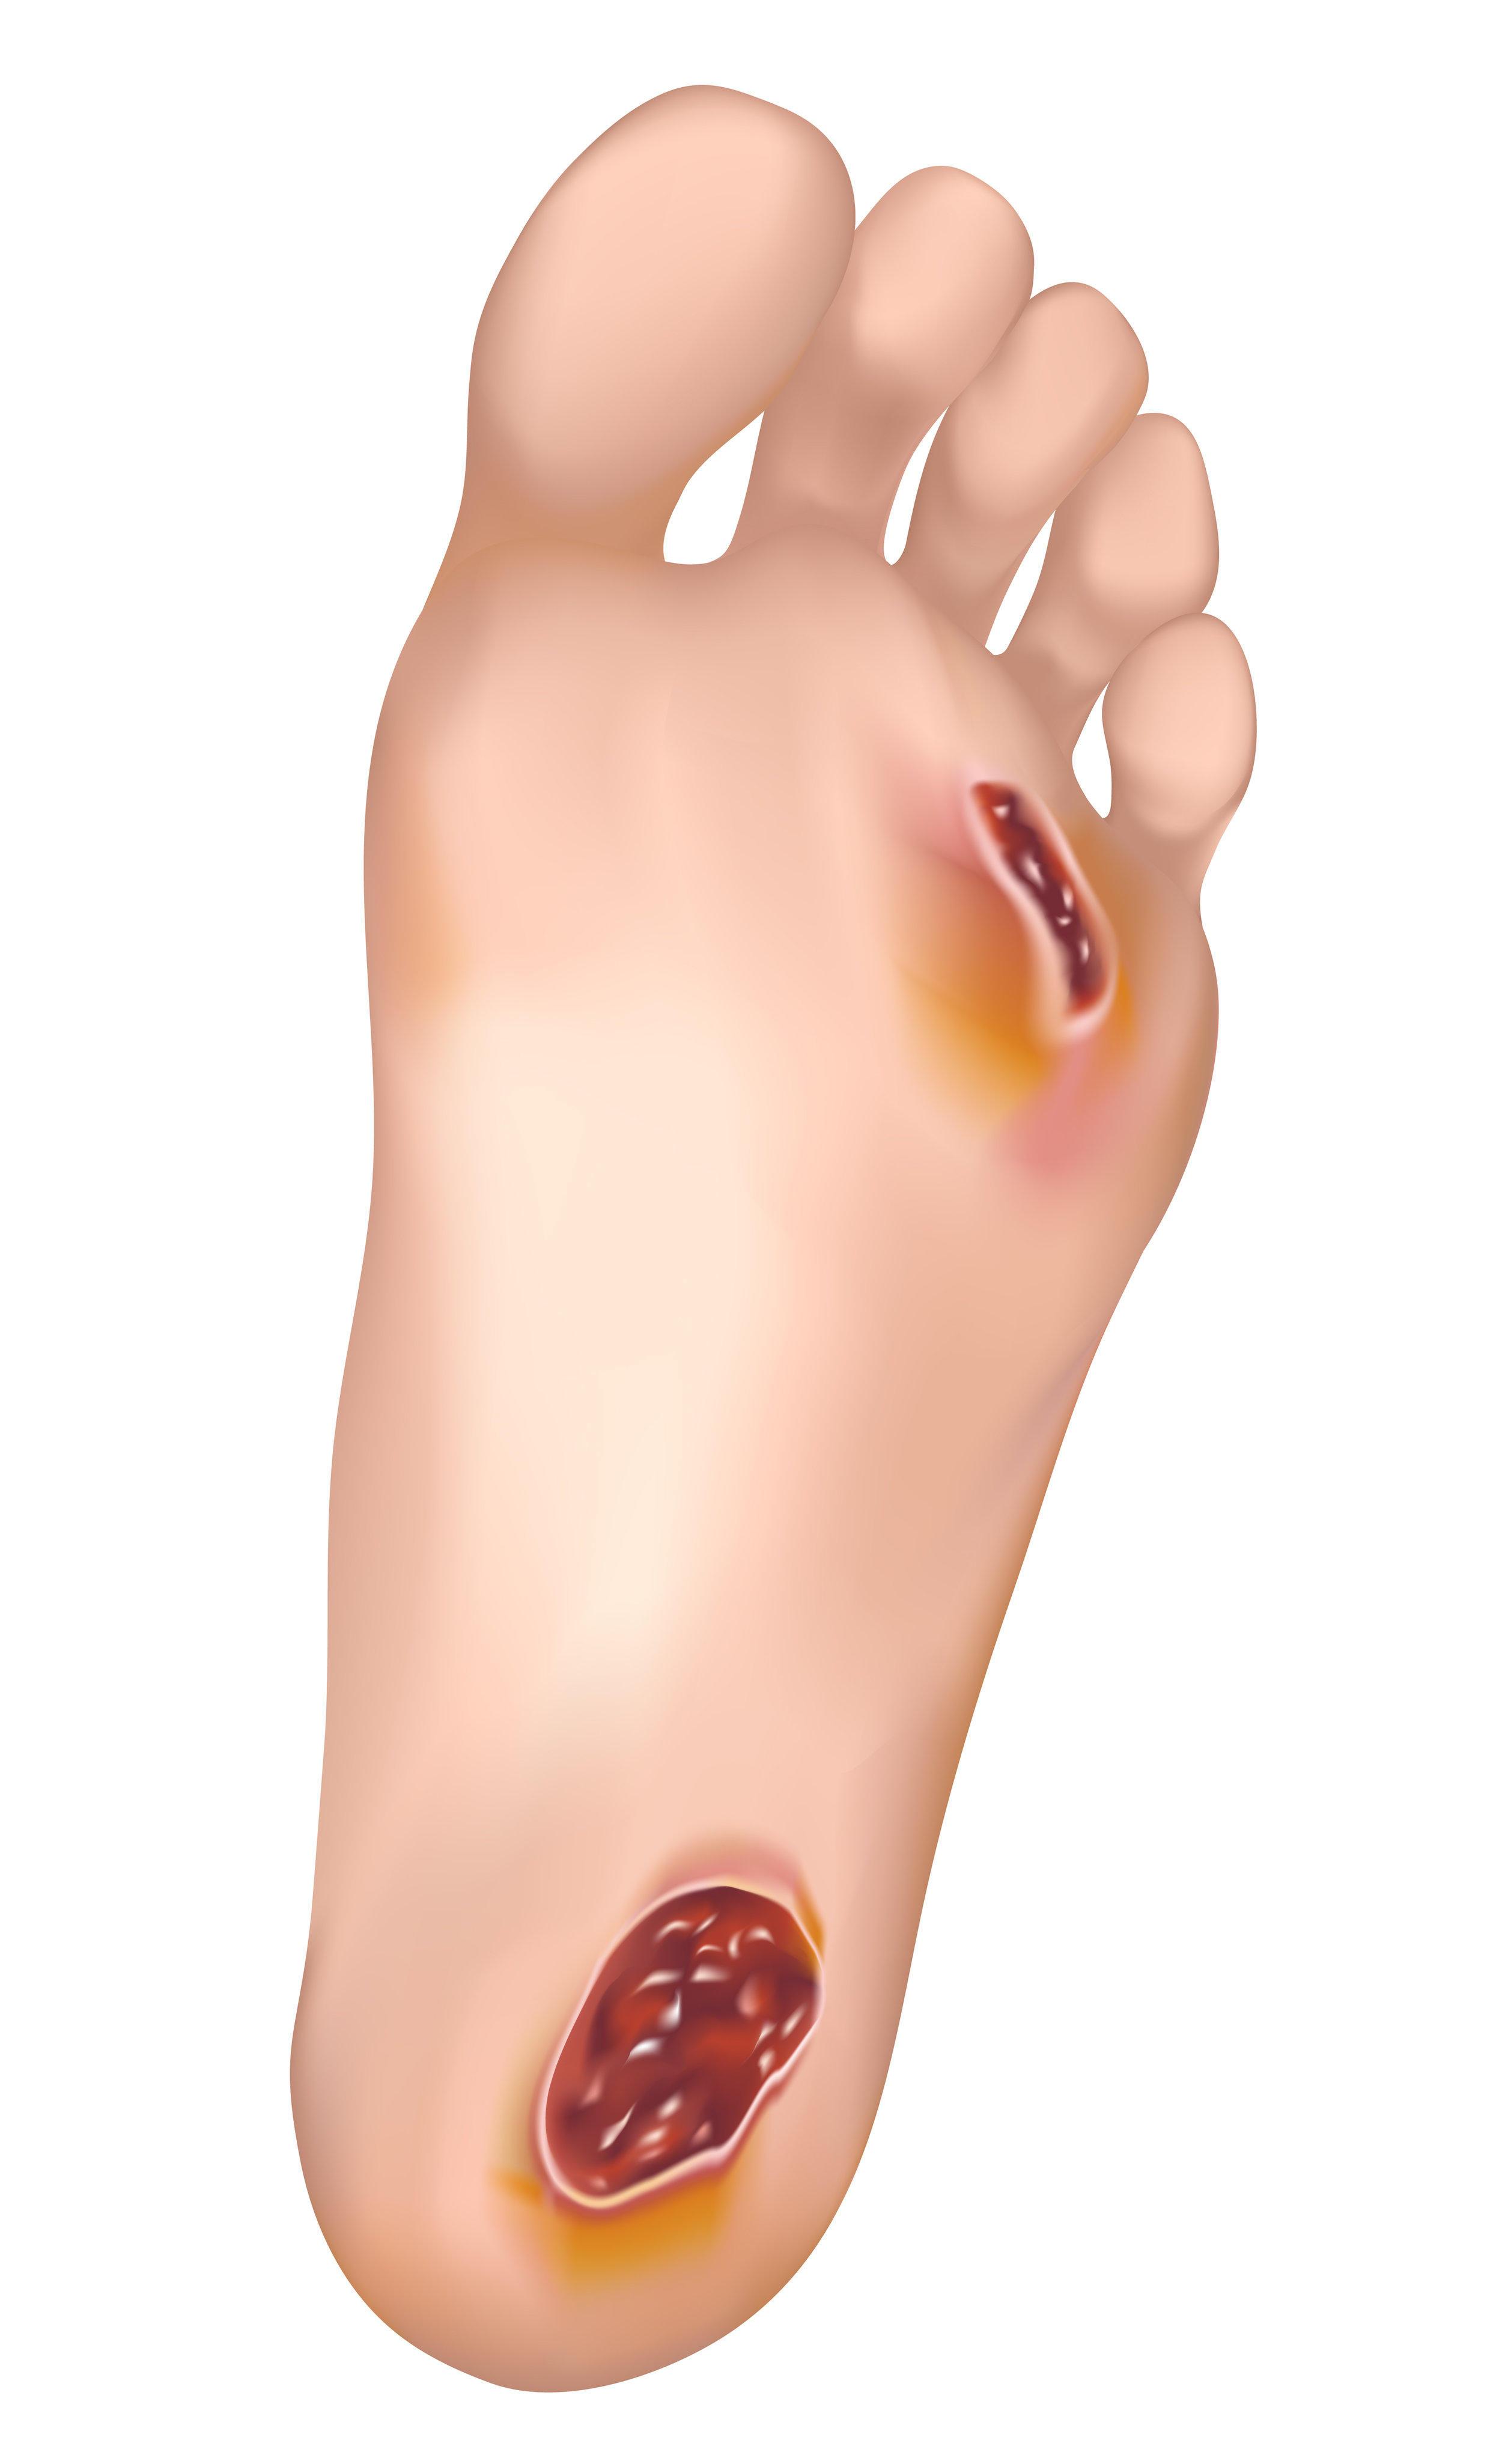 foot ulcer and diabetic wound management by florida podiatrist